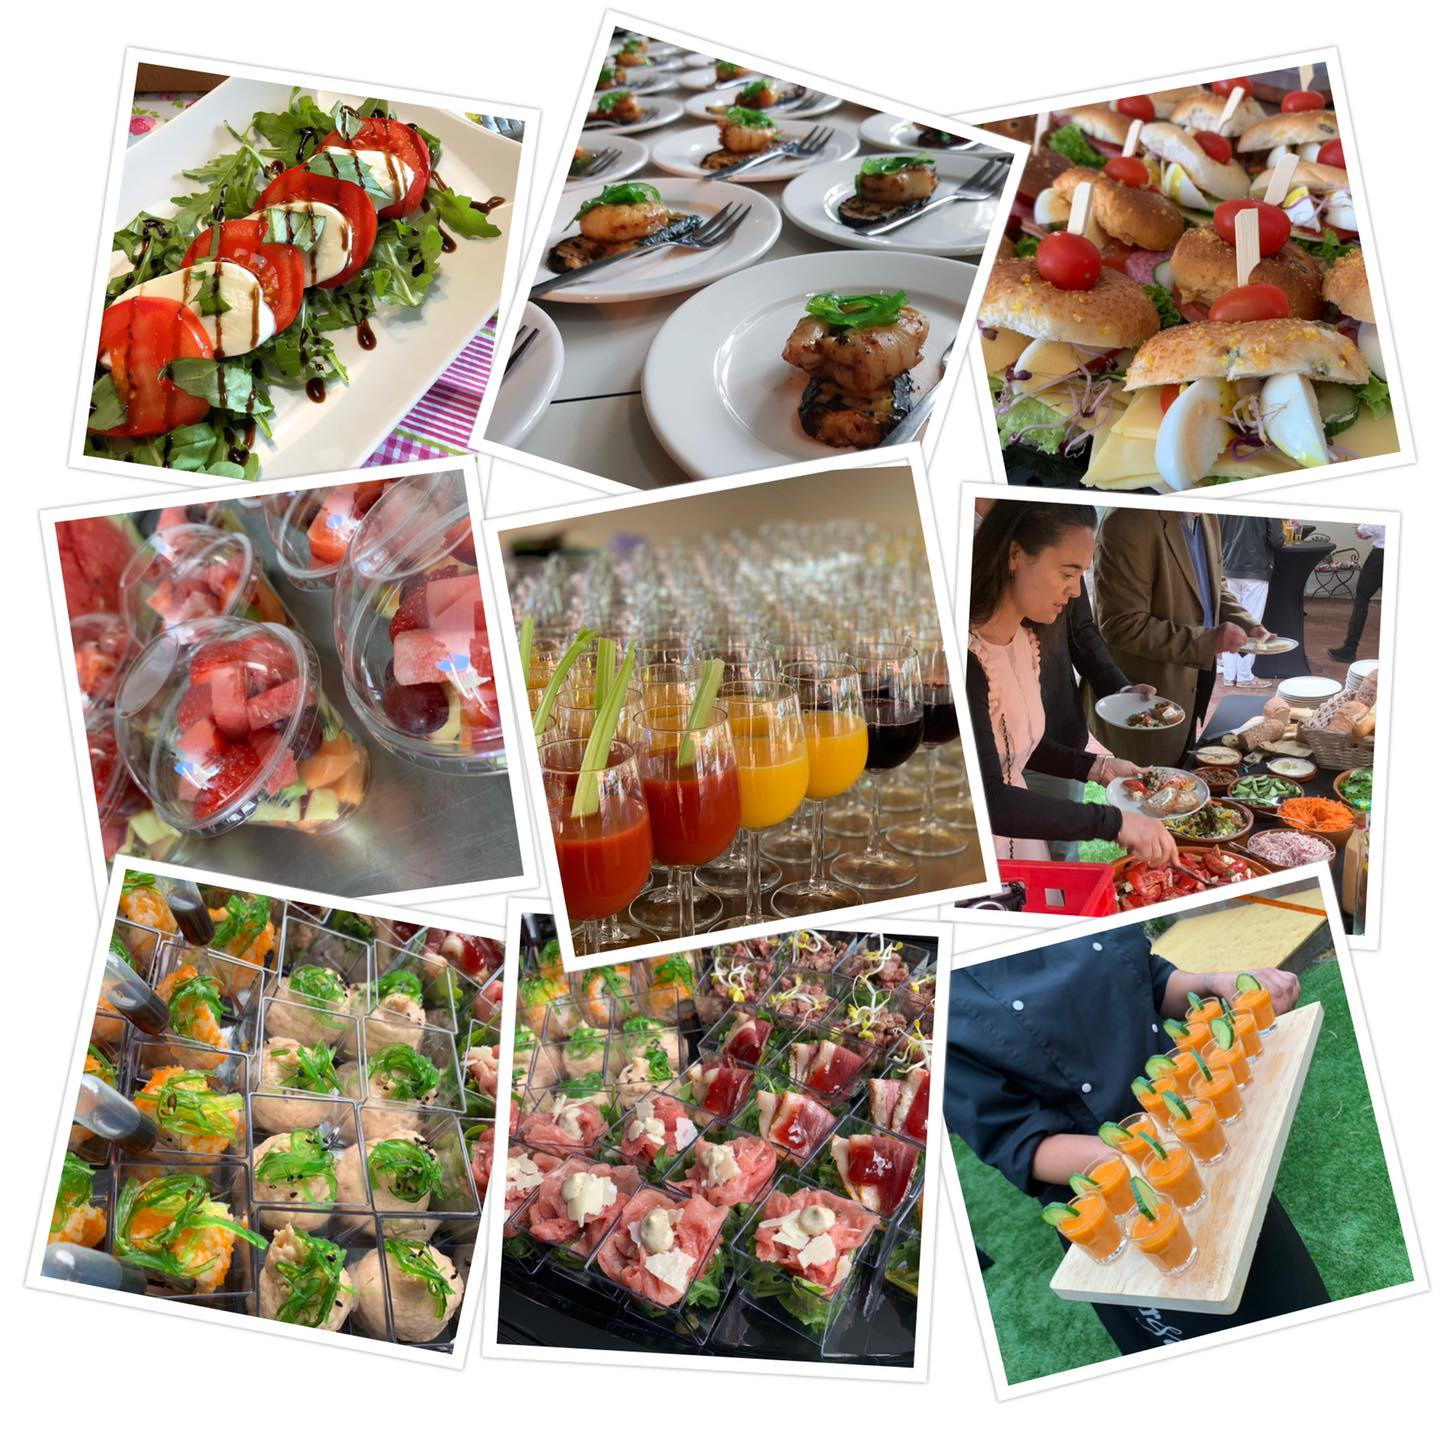 Cater & co catering